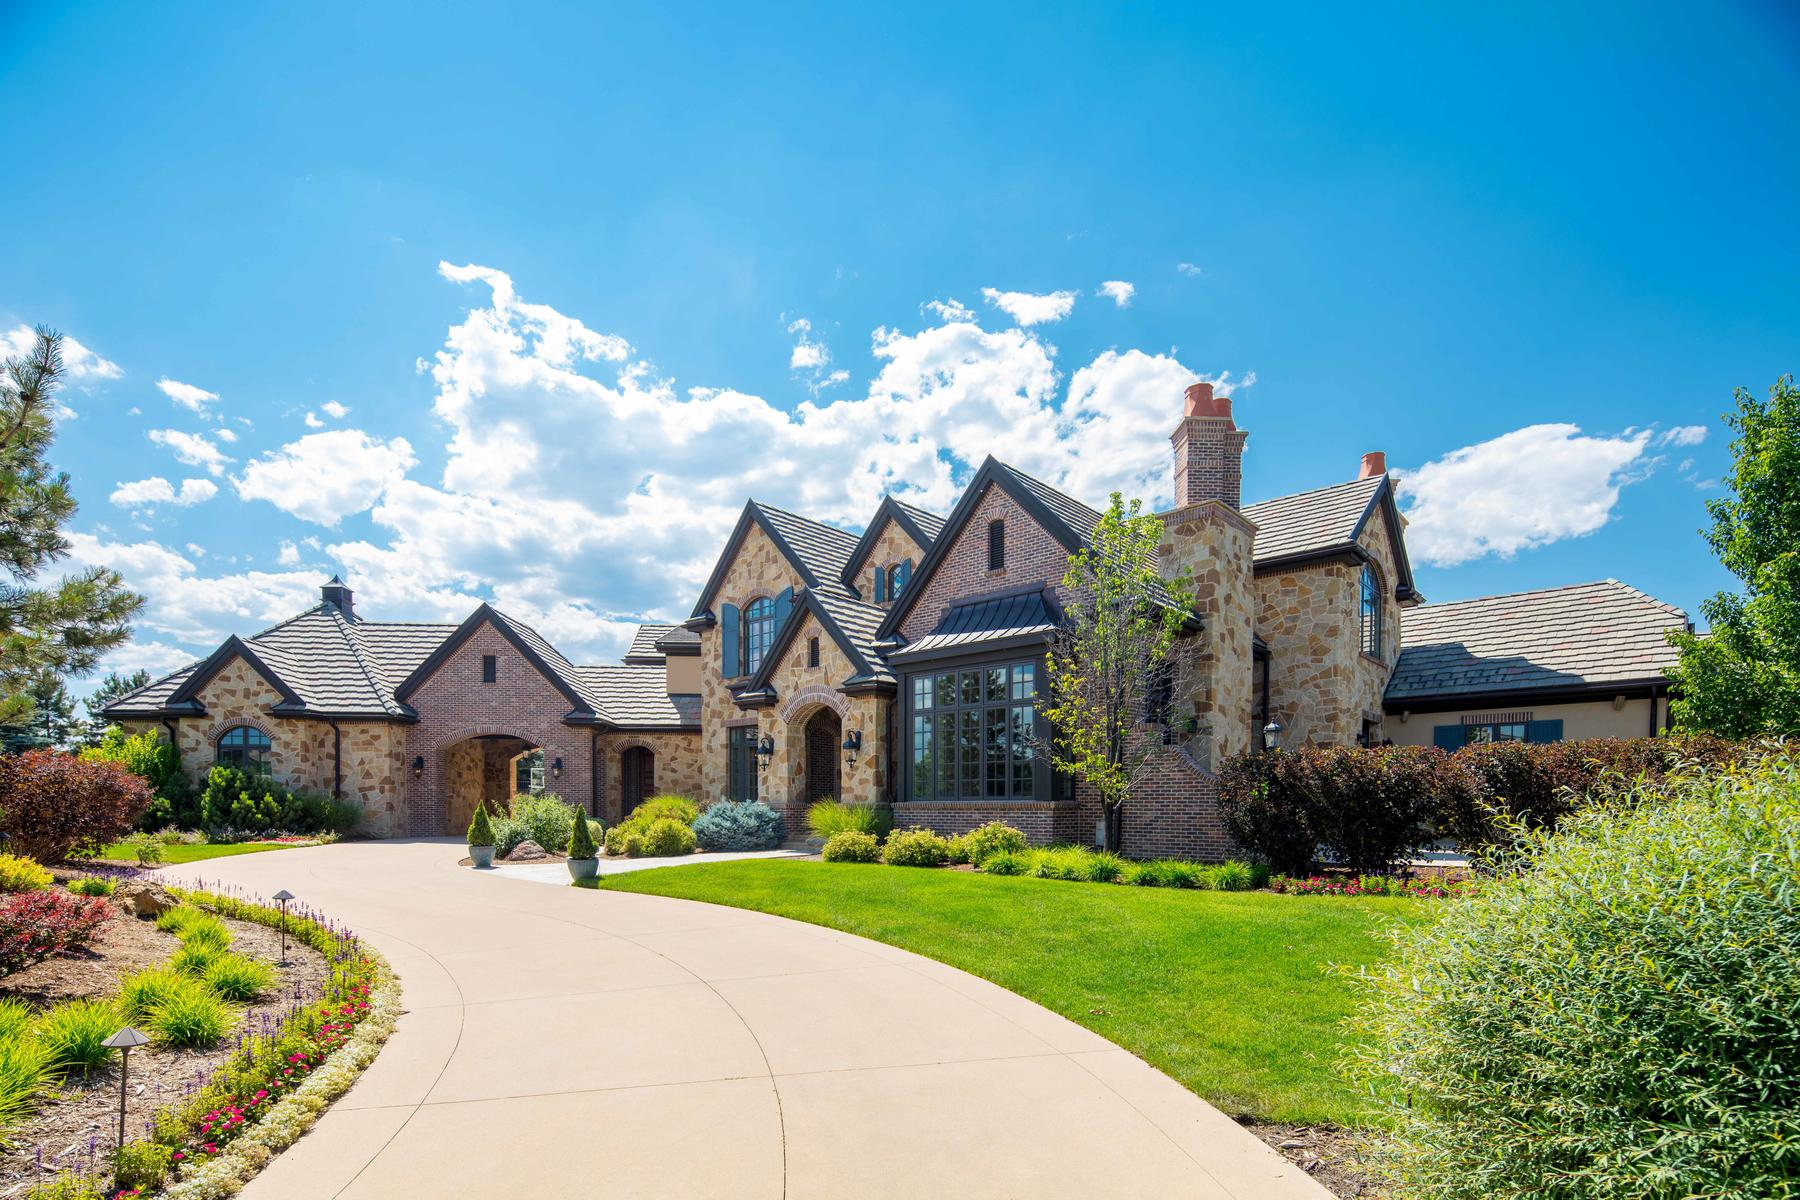 Single Family Home for Active at 4081 Preserve Parkway 4081 Preserve Parkway N Greenwood Village, Colorado 80121 United States